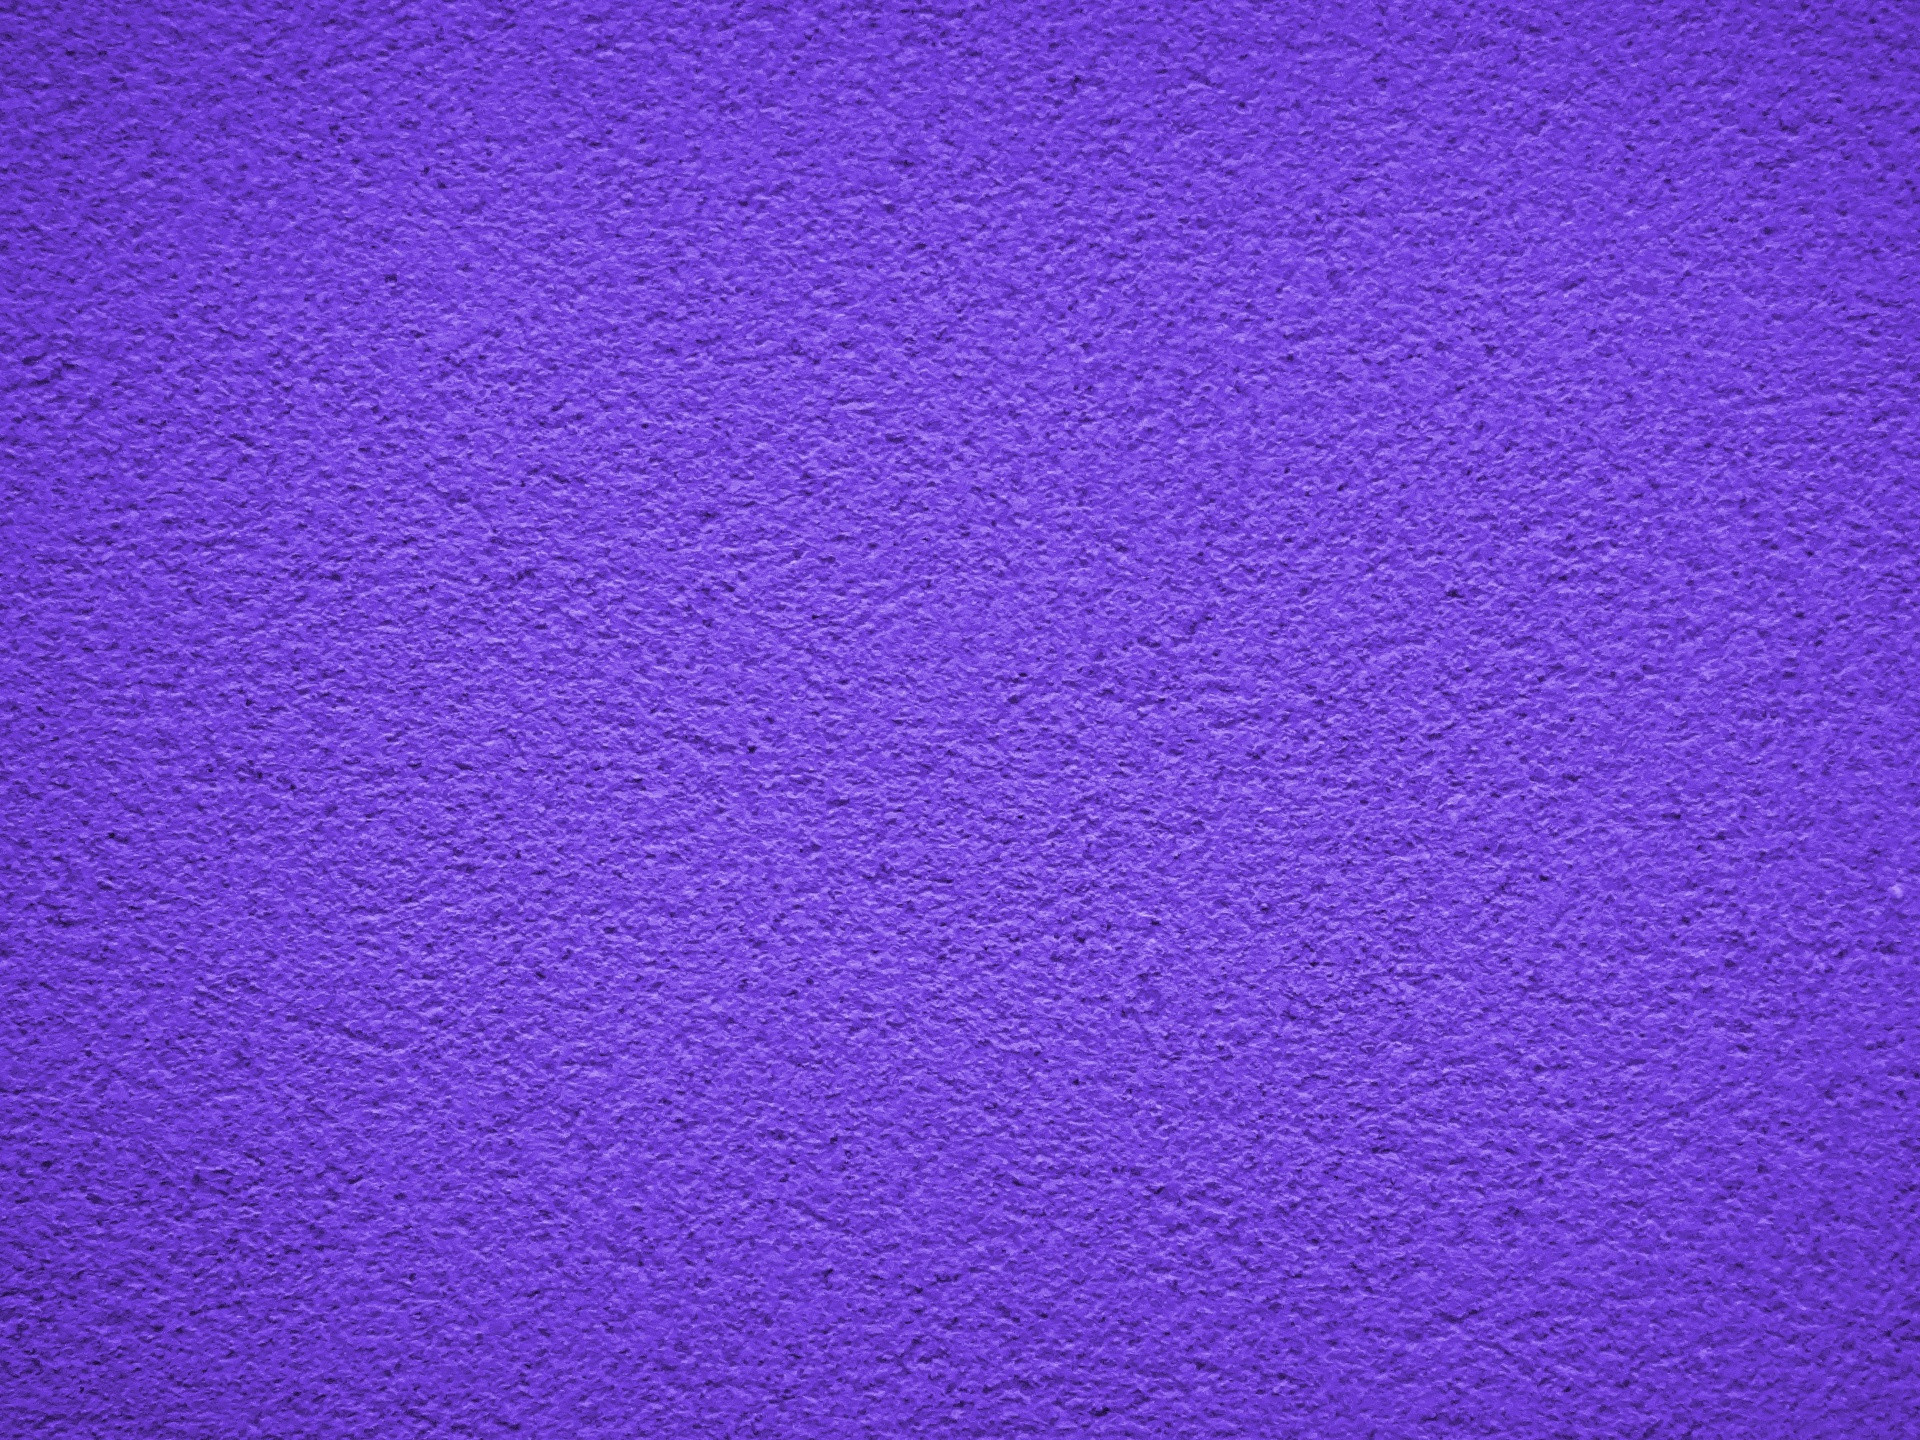 view image image= &picture=purple wallpaper background